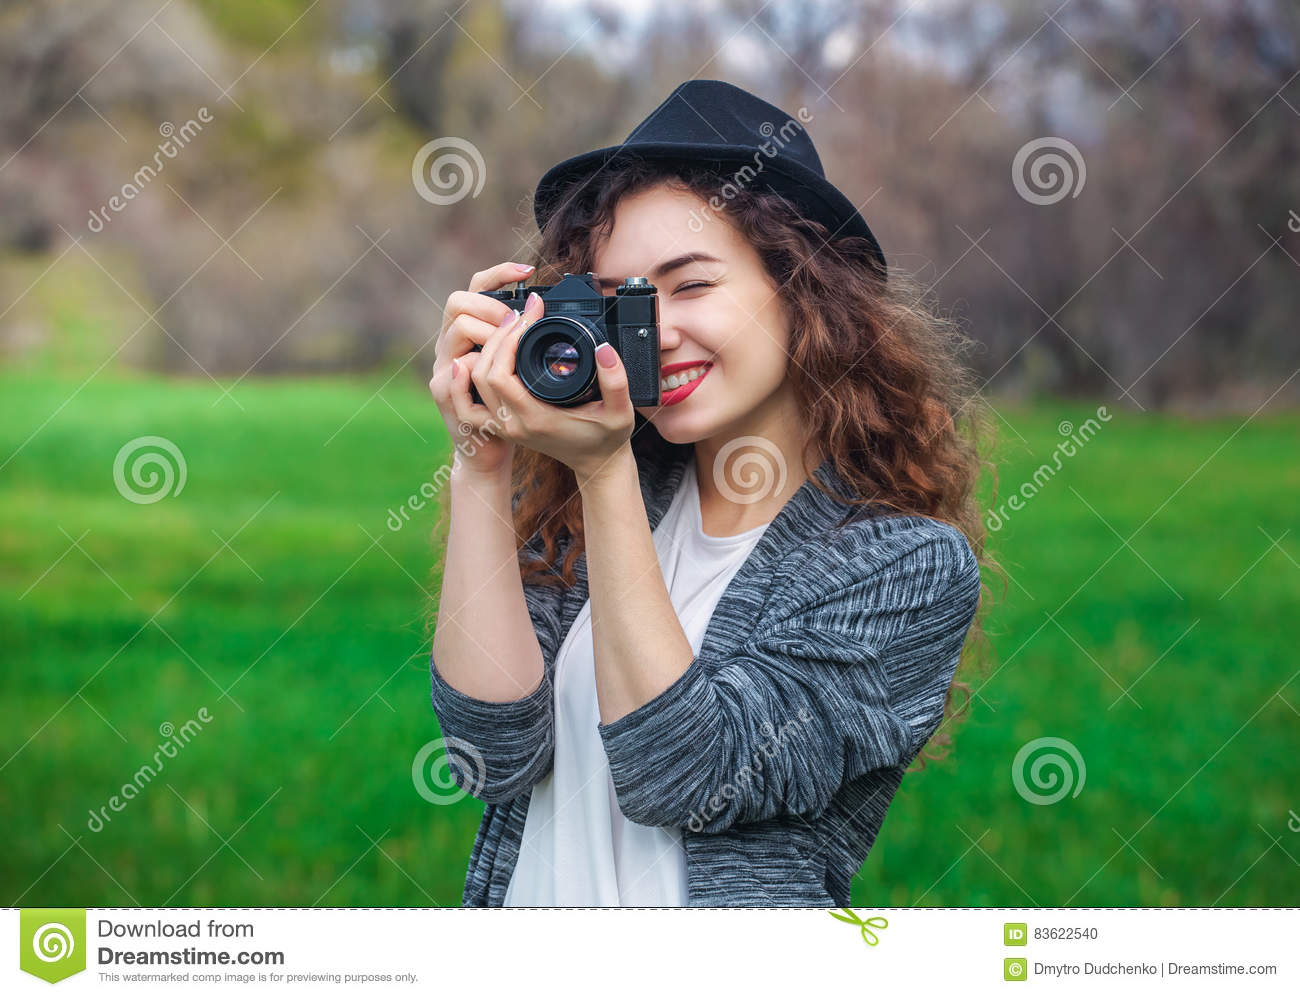 ae698afe15 Royalty-Free Stock Photo. Beautiful girl-photographer with curly hair  holding an old camera and take a picture